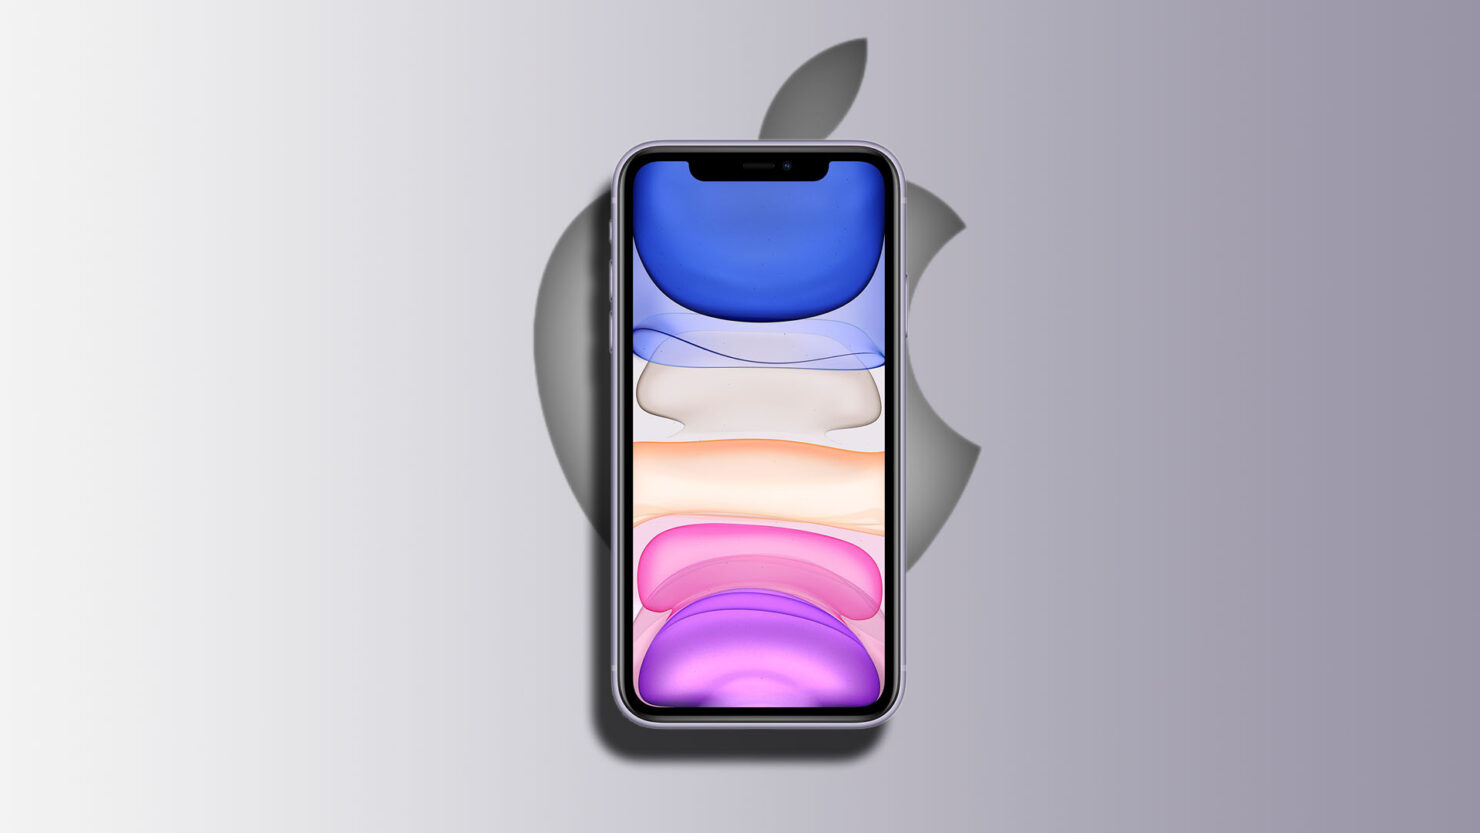 iPhone 11 Is the Model You Should Get This Holiday Season